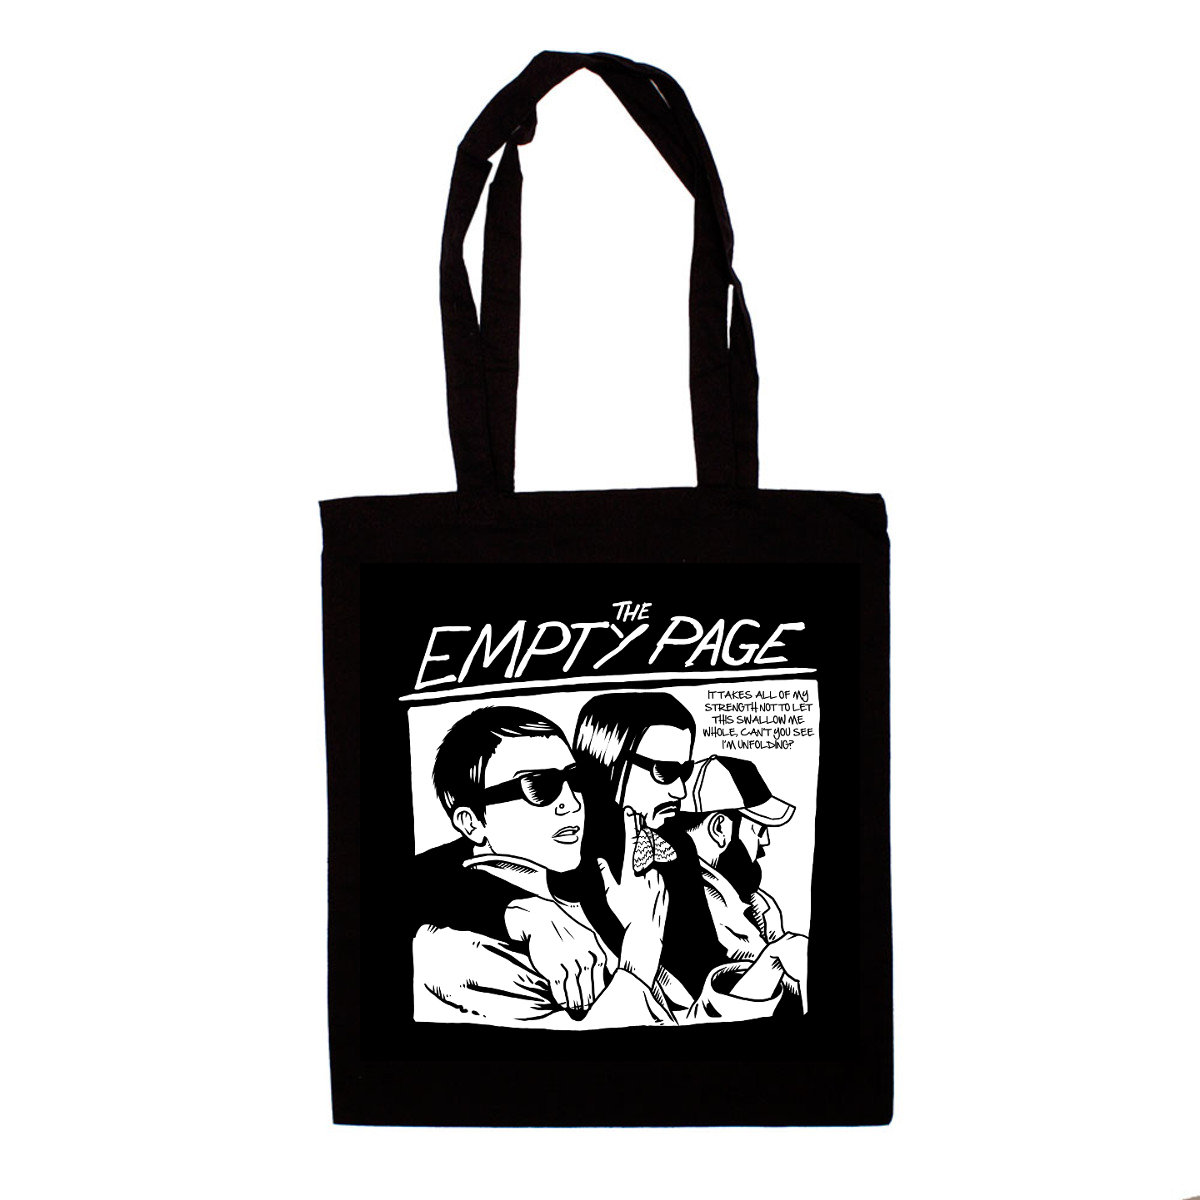 New Goo Ey Tote Bag The Empty Page